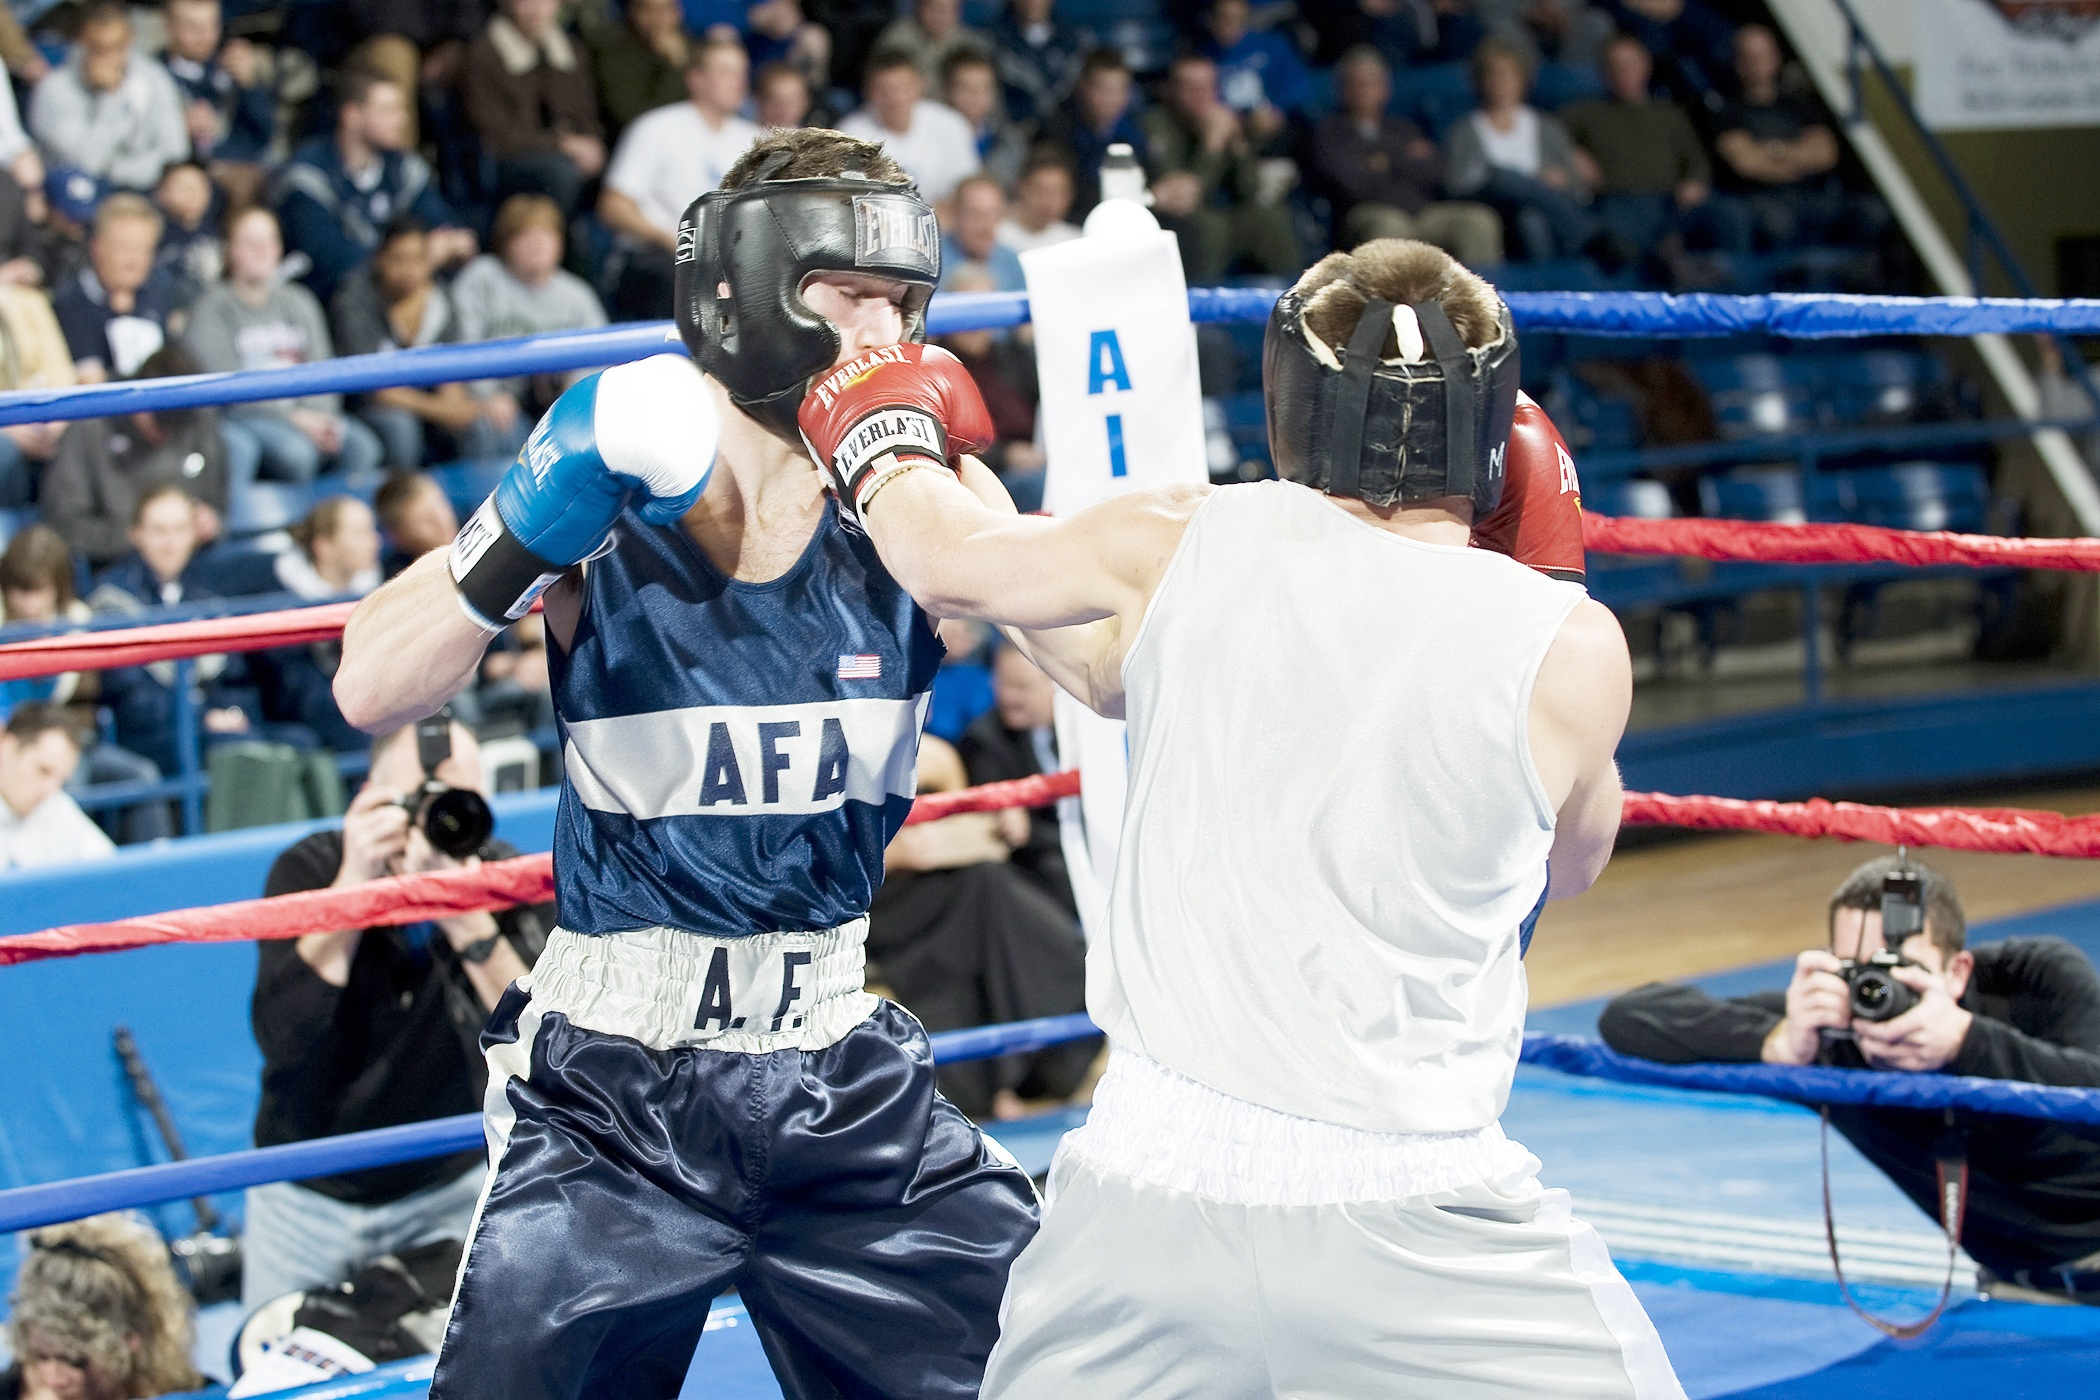 Boxing in the ring photo